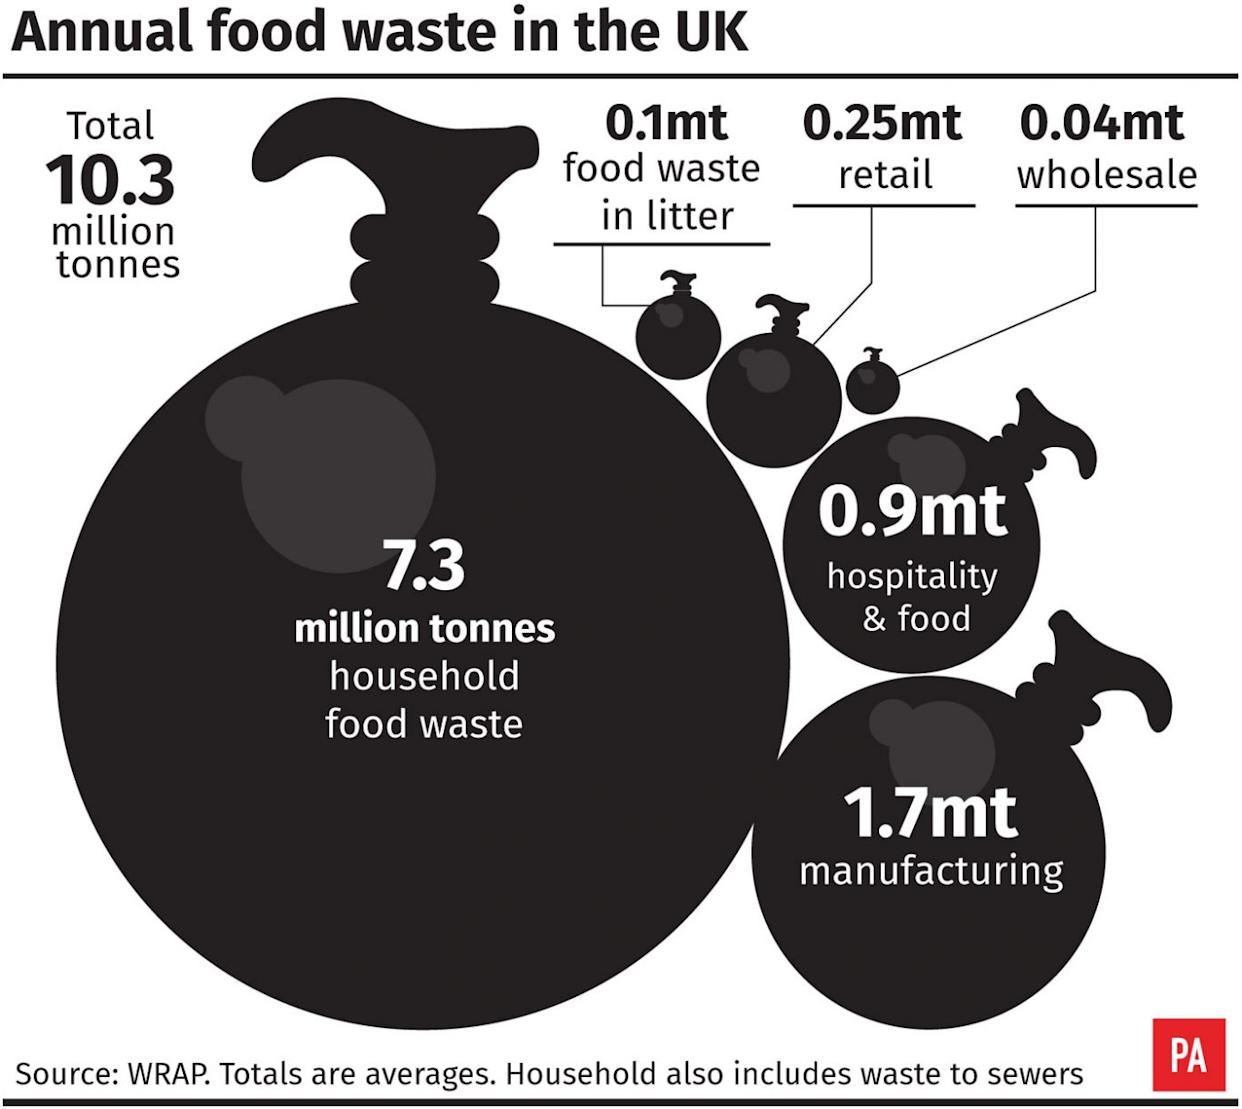 Annual food waste in the UK